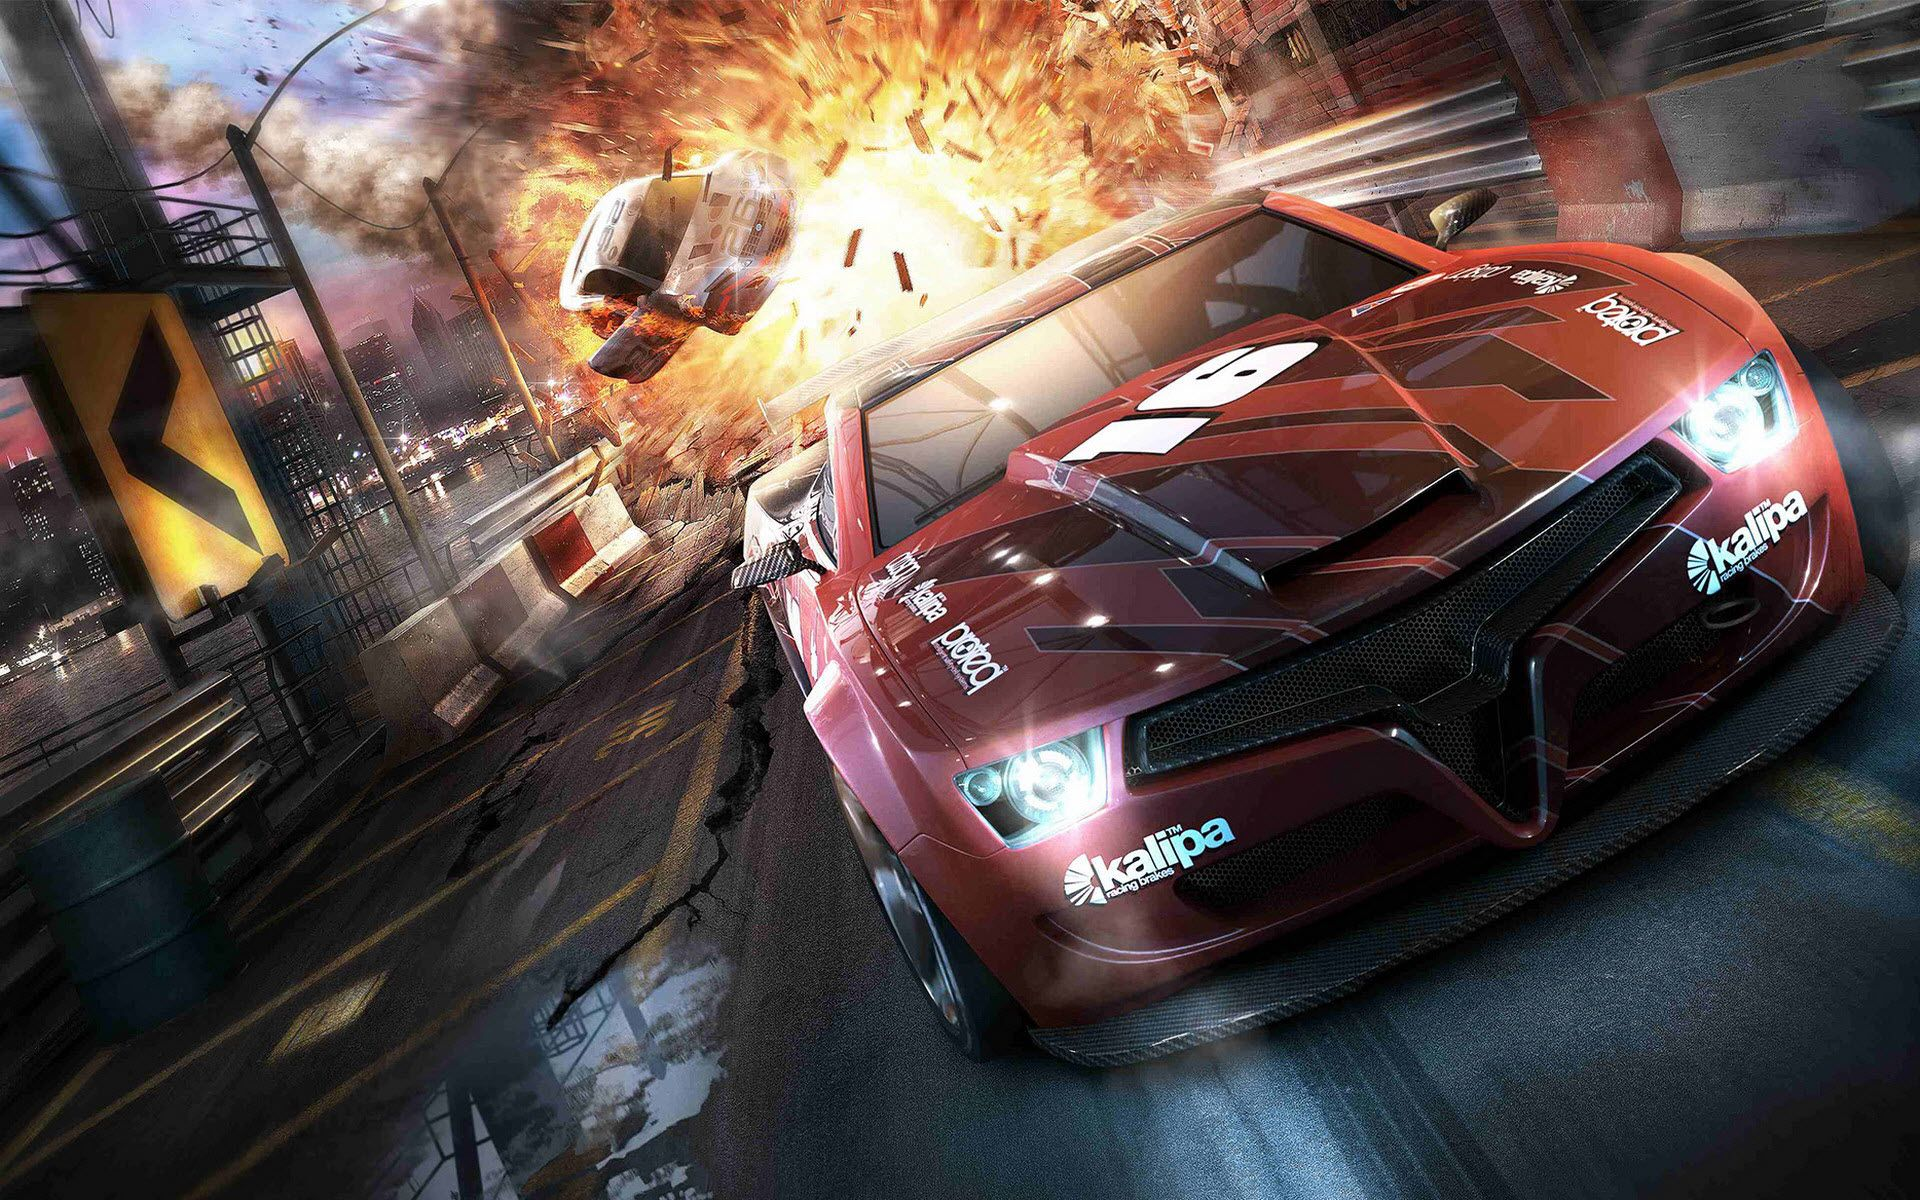 High Def Gaming Backgrounds For Your Computer Desktop Car Pc Games Wallpapers Best Pc Games